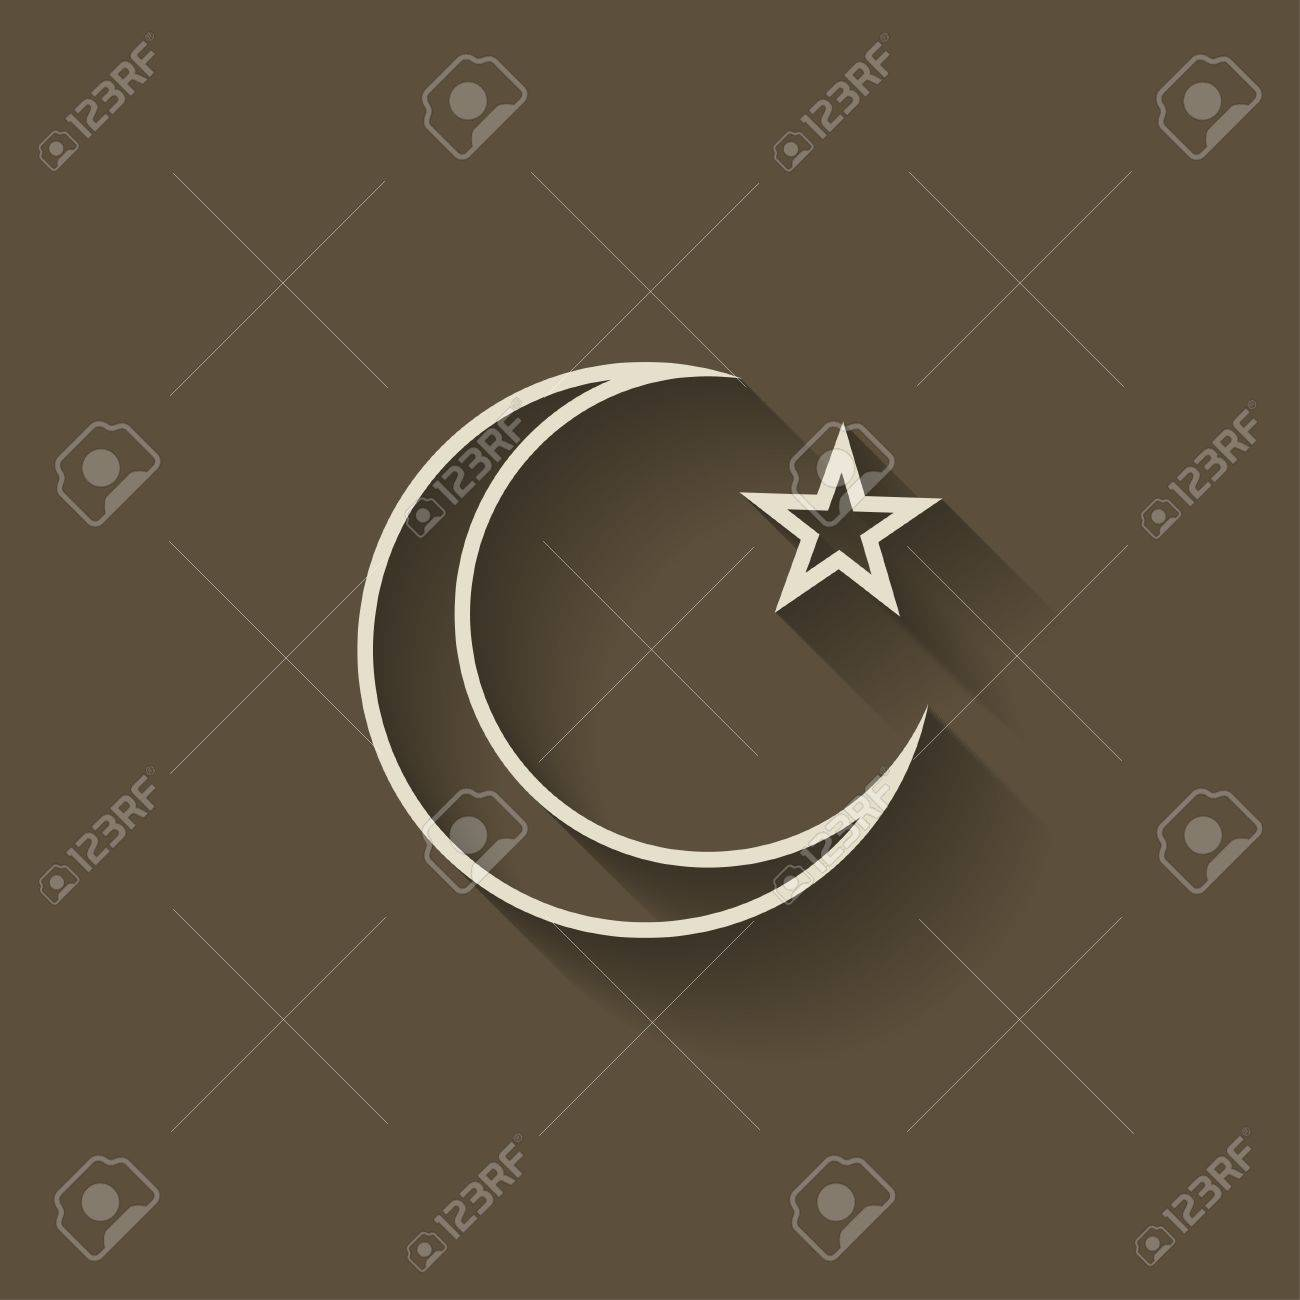 Crescent moon and star vector illustration eps 8 royalty free crescent moon and star vector illustration eps 8 stock vector 29314138 biocorpaavc Gallery